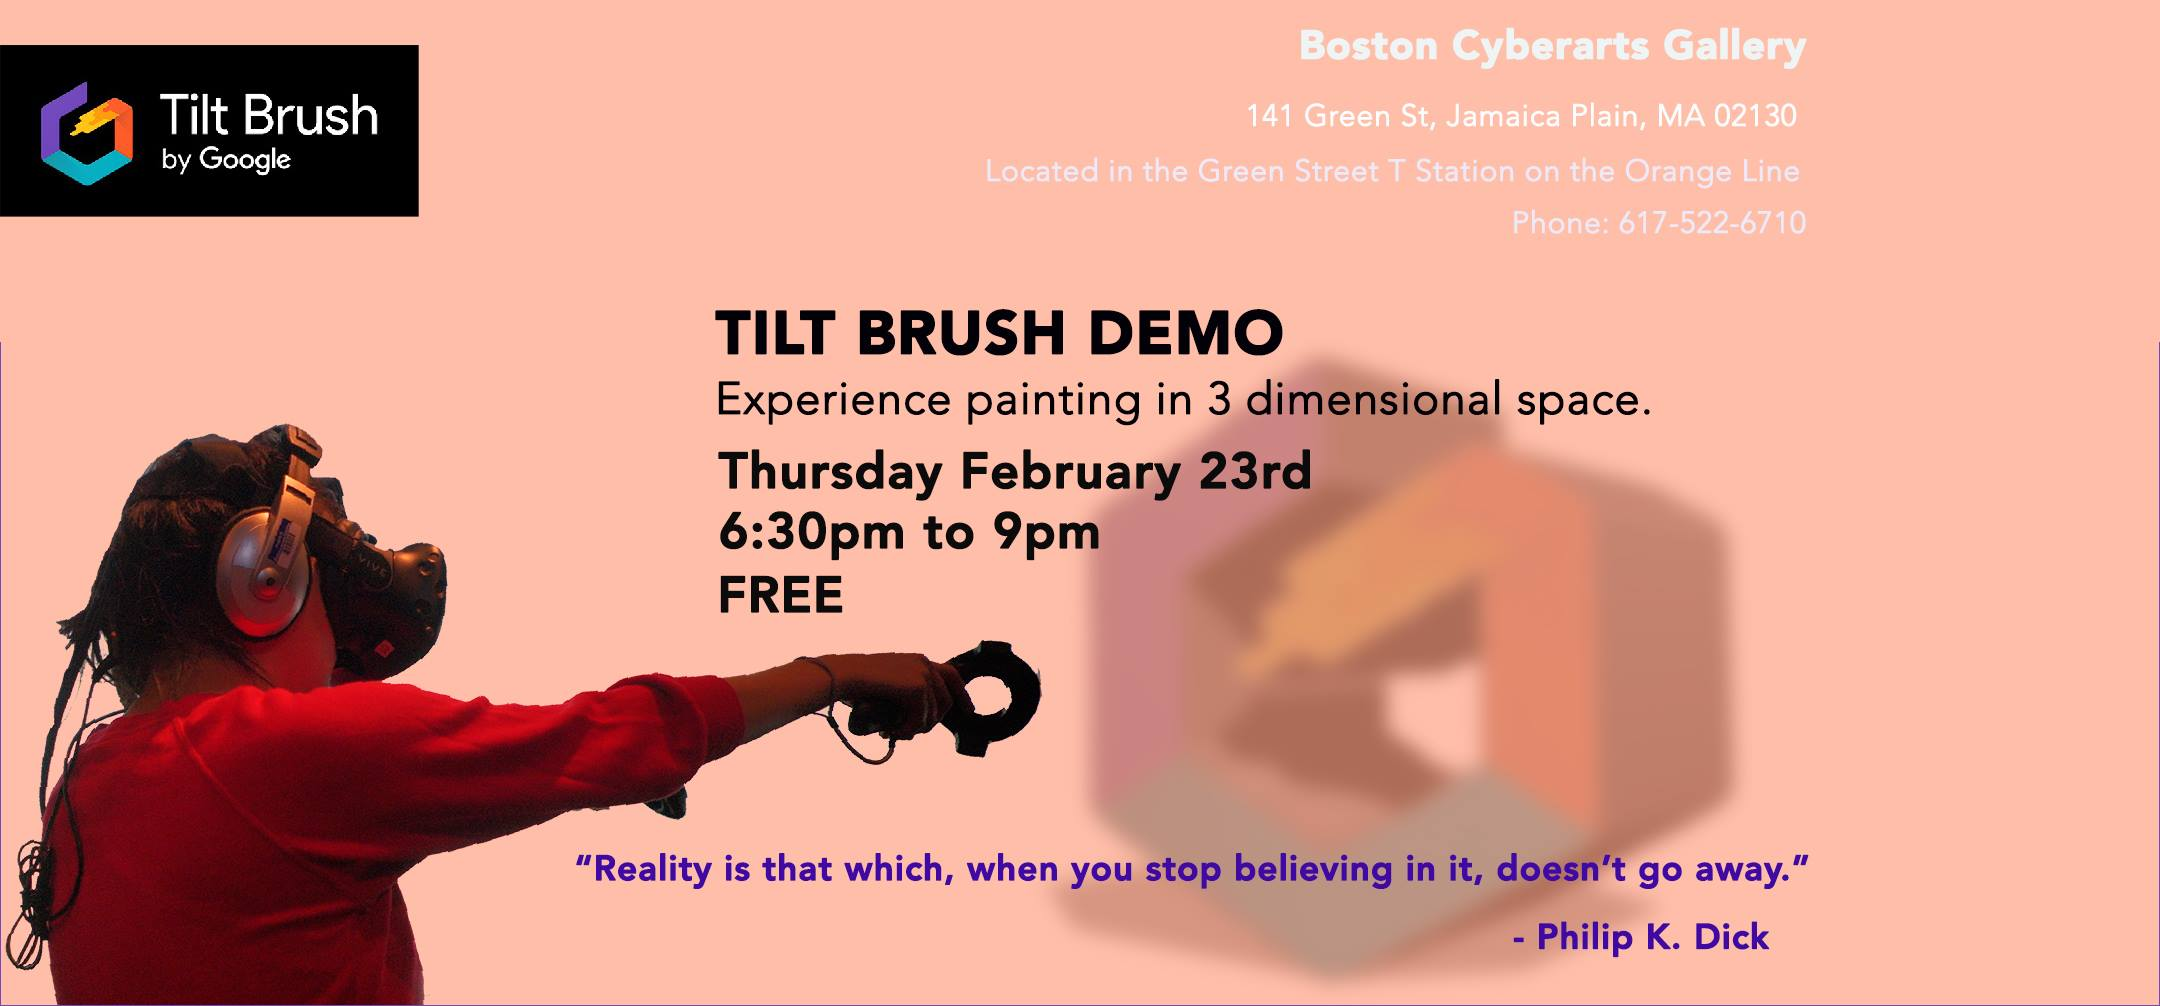 Tilt Brush Demo: Experience Painting in 3D Space   BOSTON